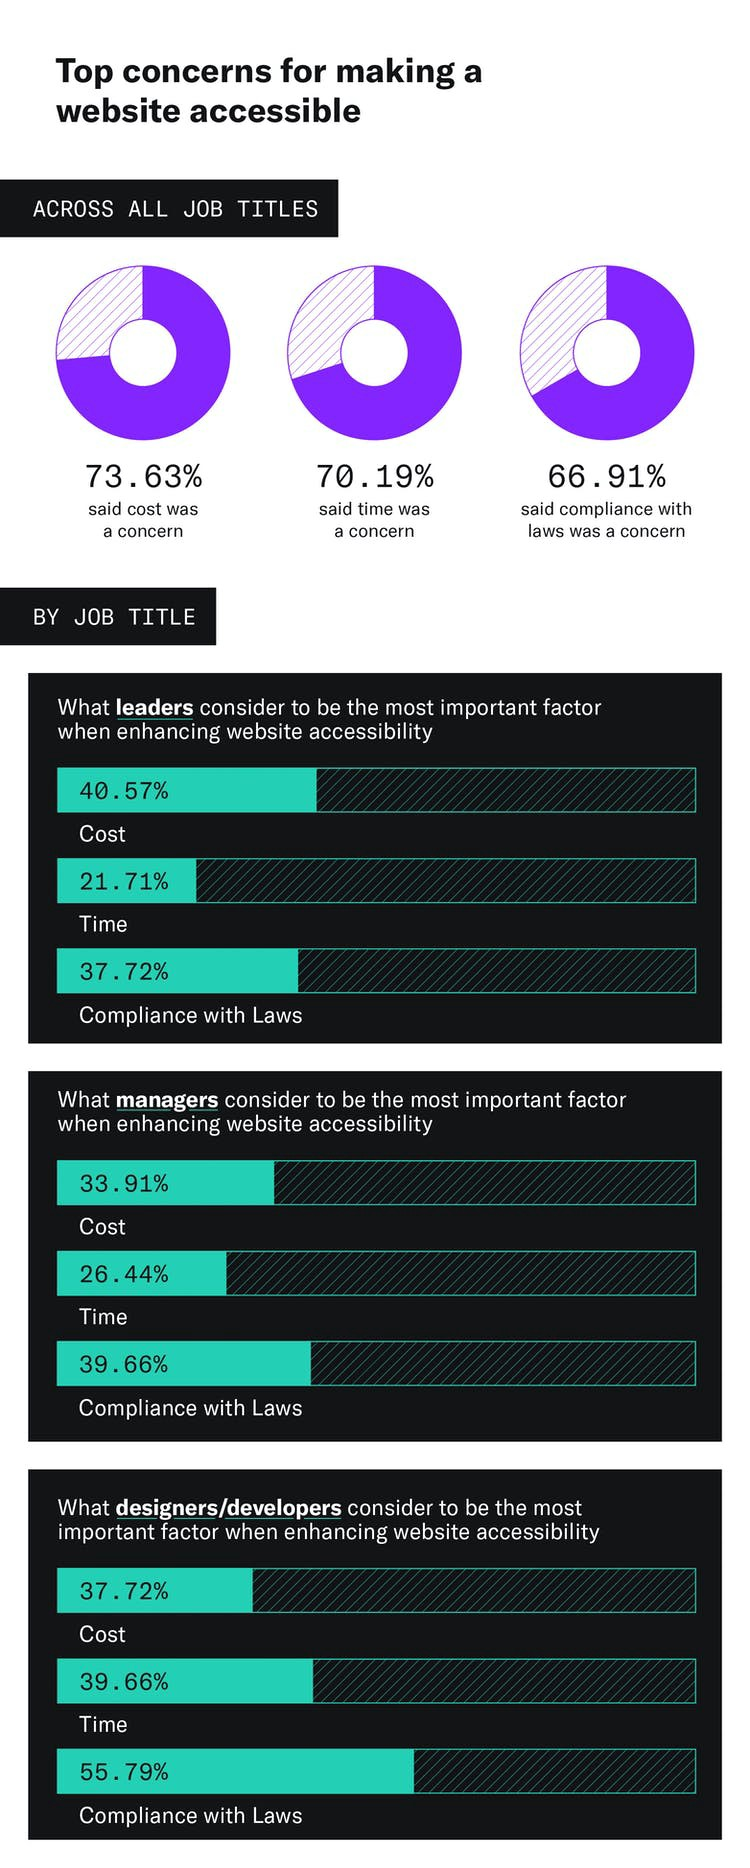 An infographic depicting the top concerns for making a website accessible between time, cost, and compliance with laws for leaders, managers, and designers/developers. Cost is the biggest concern for 40.57% of leaders. Compliance with laws is the biggest concern for 39.66% of managers and 55.79% of designers/developers.